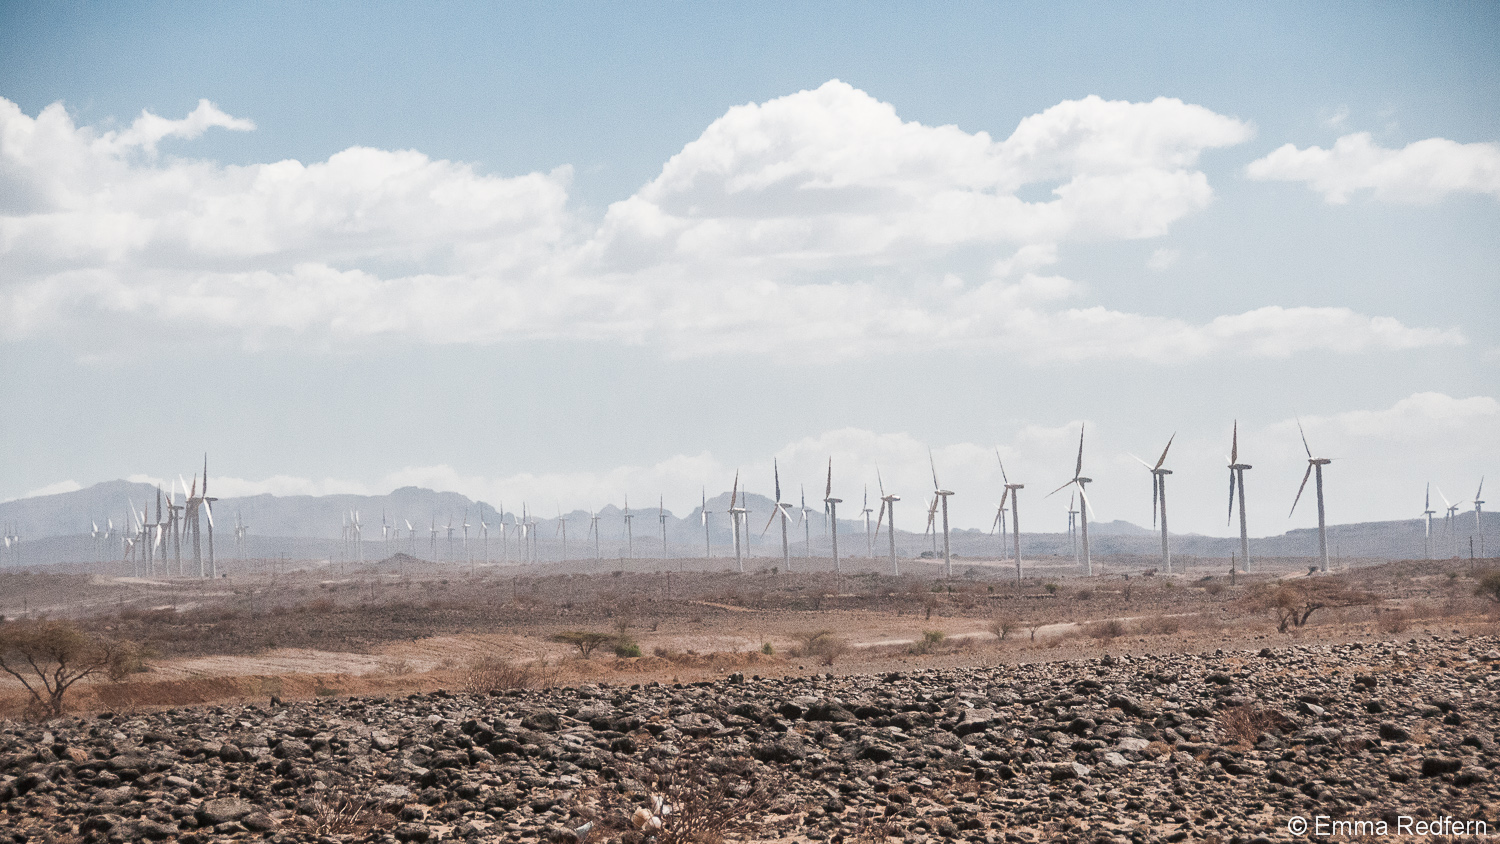 Line after line of wind turbines march into the distance at Africa's largest wind farm near Lake Turkana